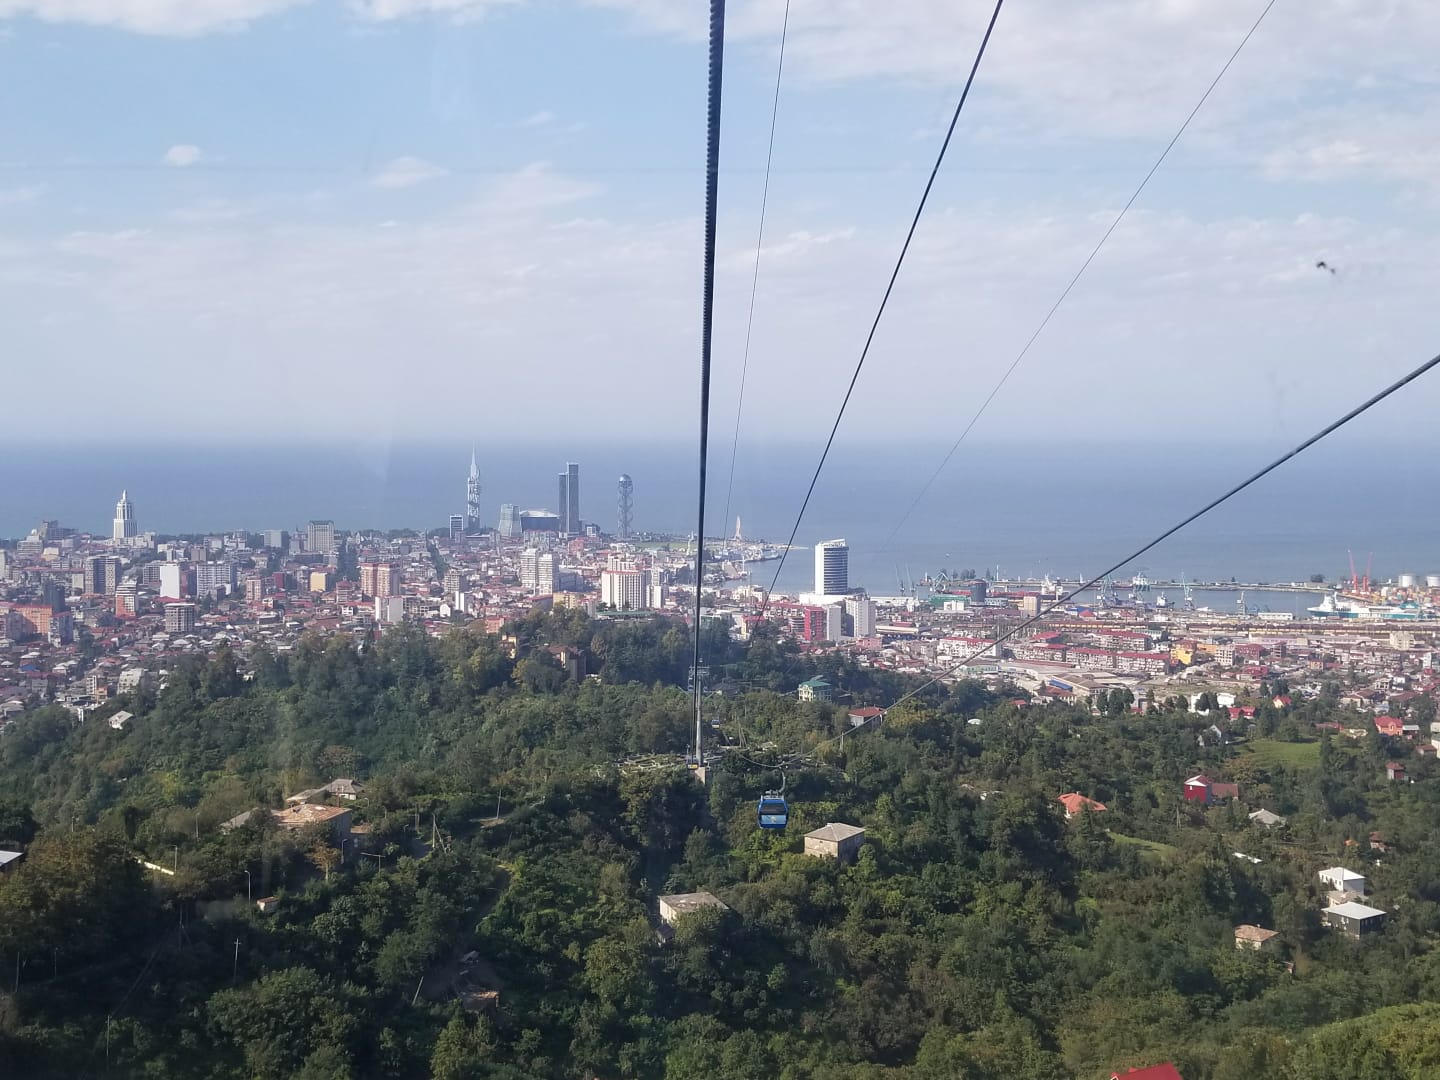 View of Batumi from the cable car